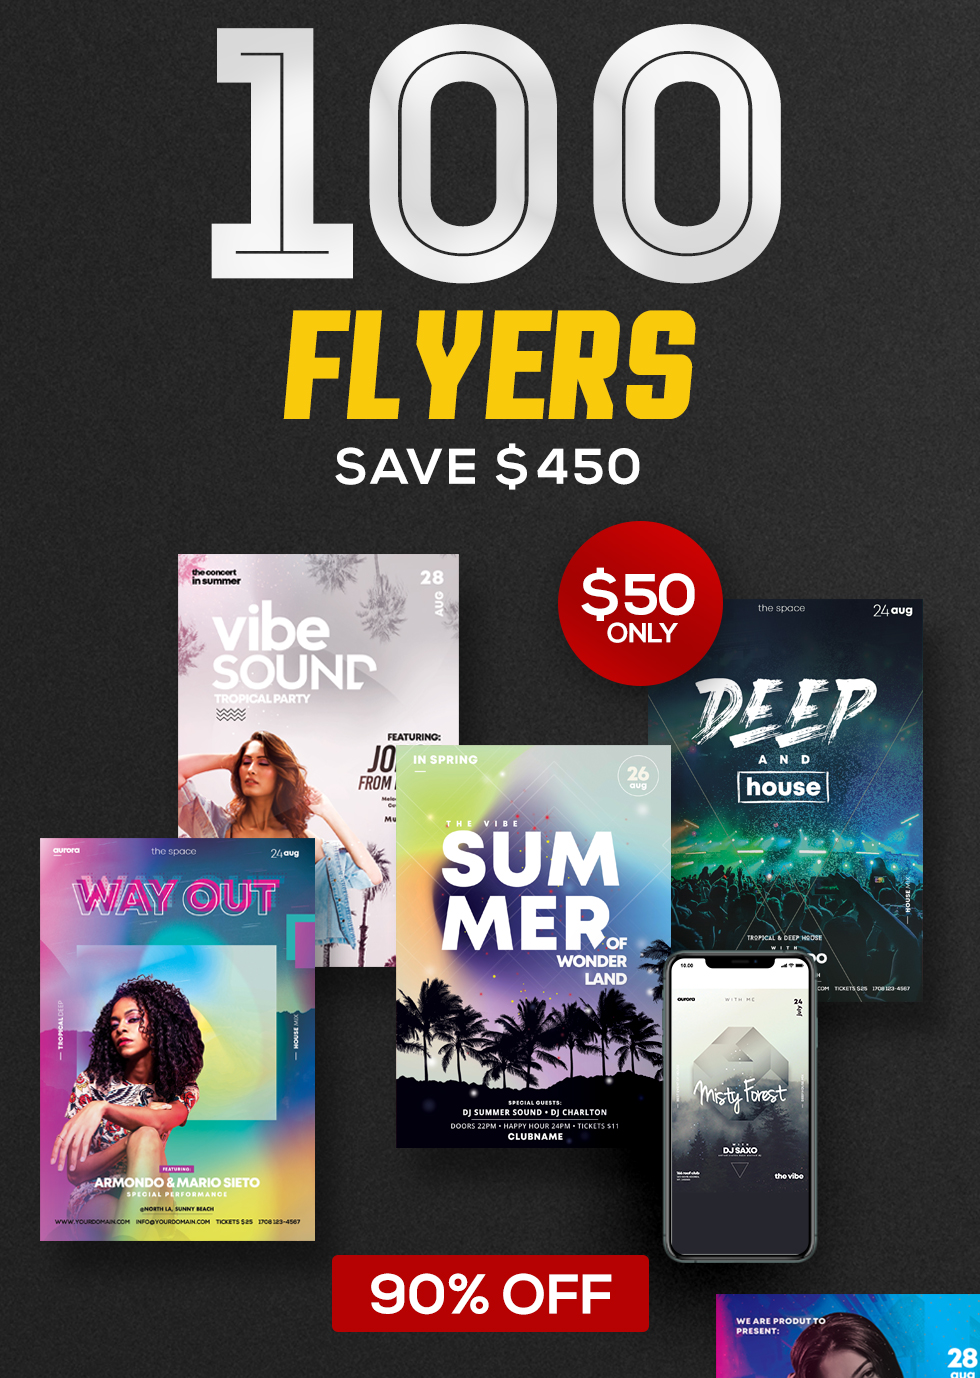 100+ Flyers Bundle - 90% OFF